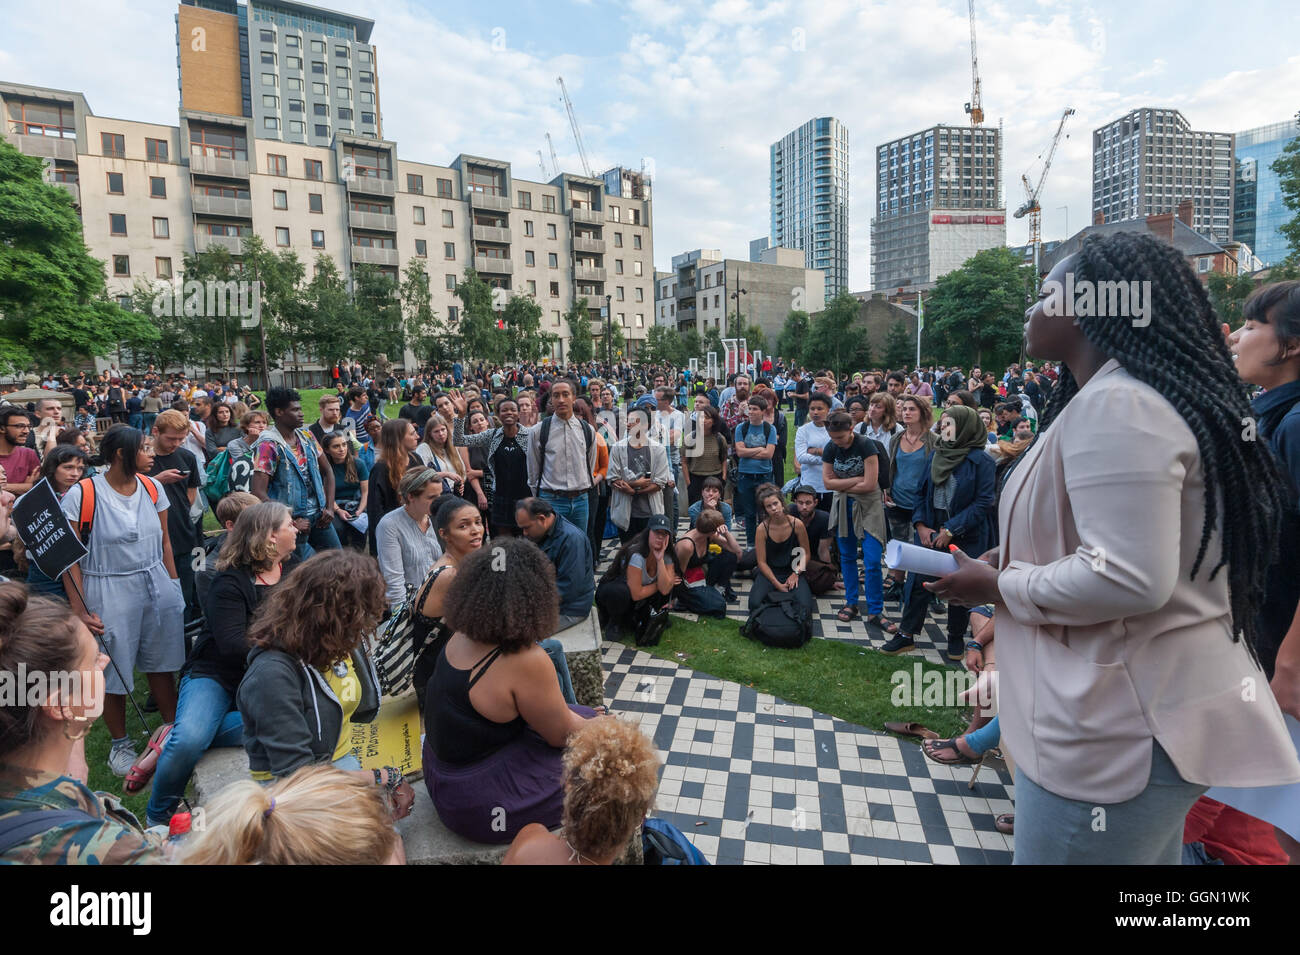 London, UK. 5th Aug, 2016. After the speeches at the Black LIves Matter rally in Altab Ali Park in East London to - Stock Image